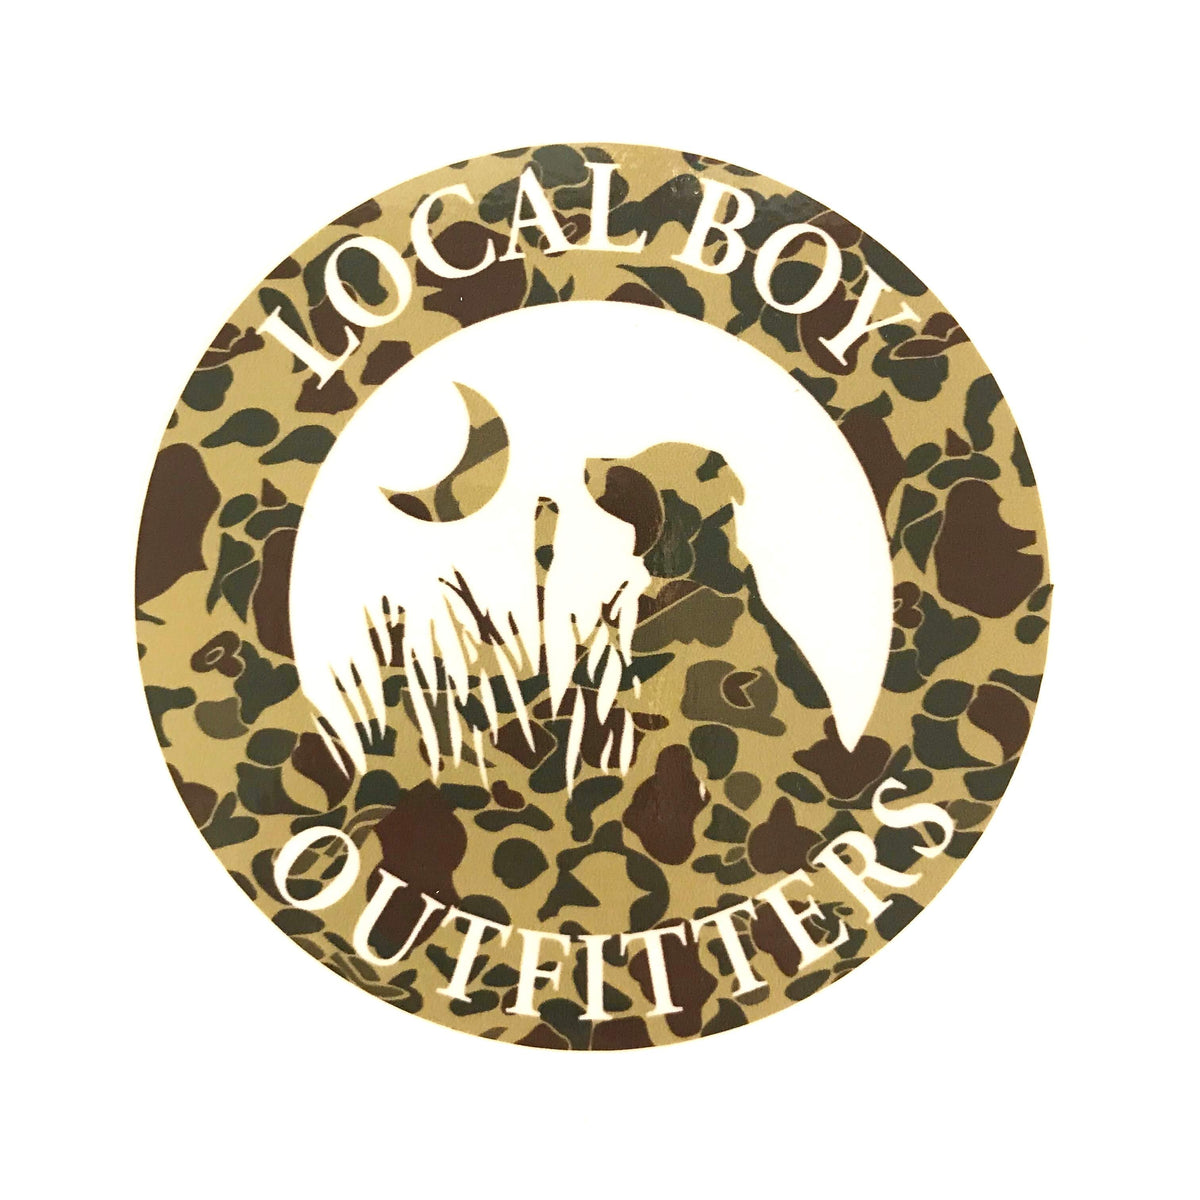 Local Boy Round Camo Decal